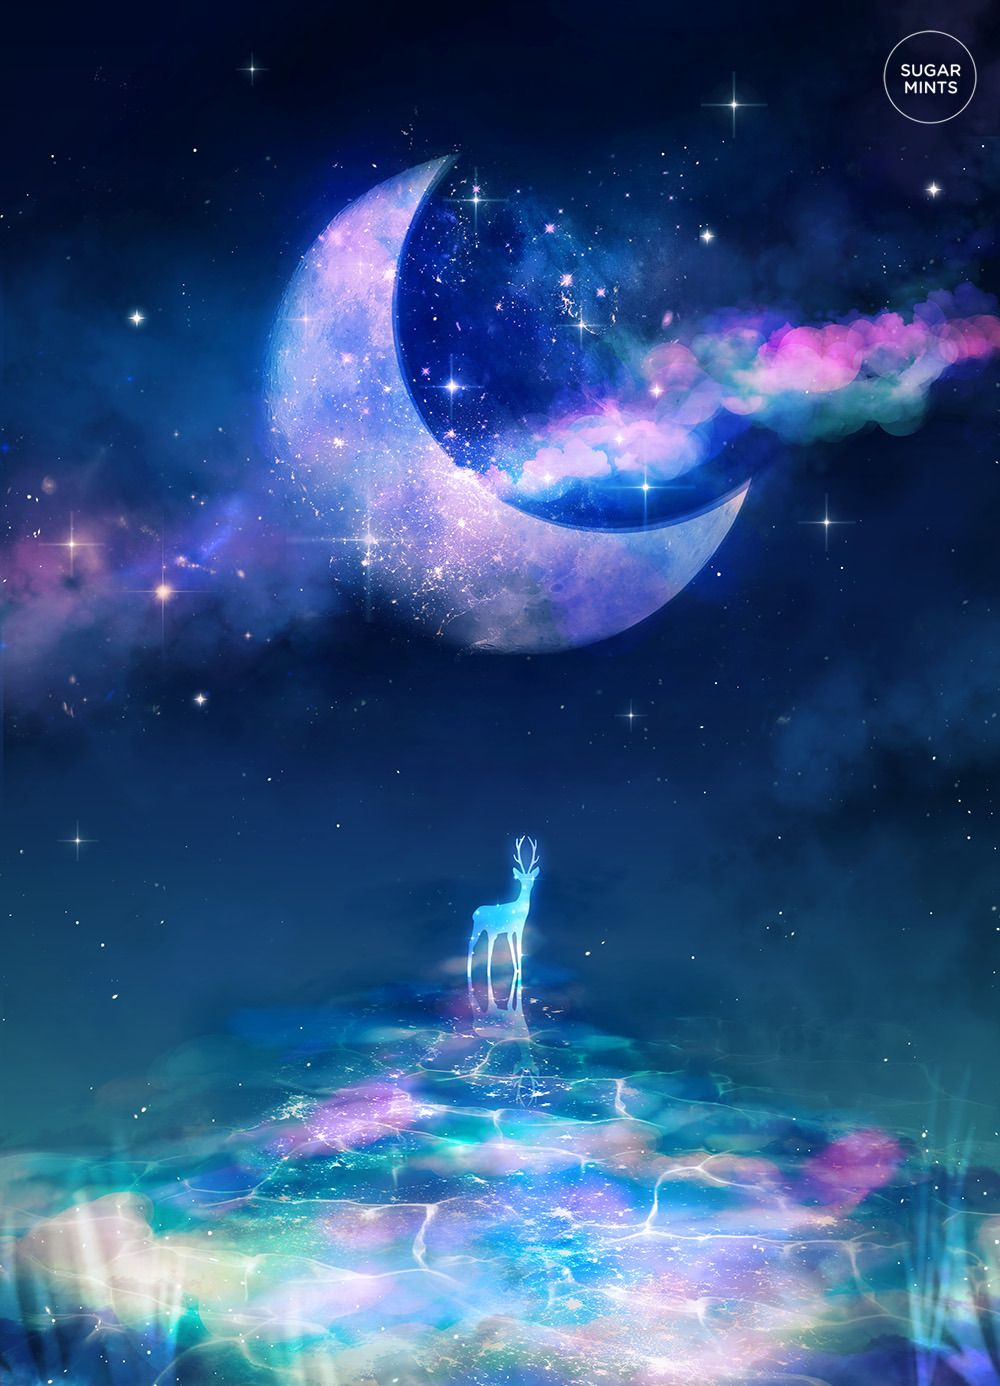 Moon River Sugarmints Artblog Beautiful Fantasy Art Anime Scenery Fantasy Posters